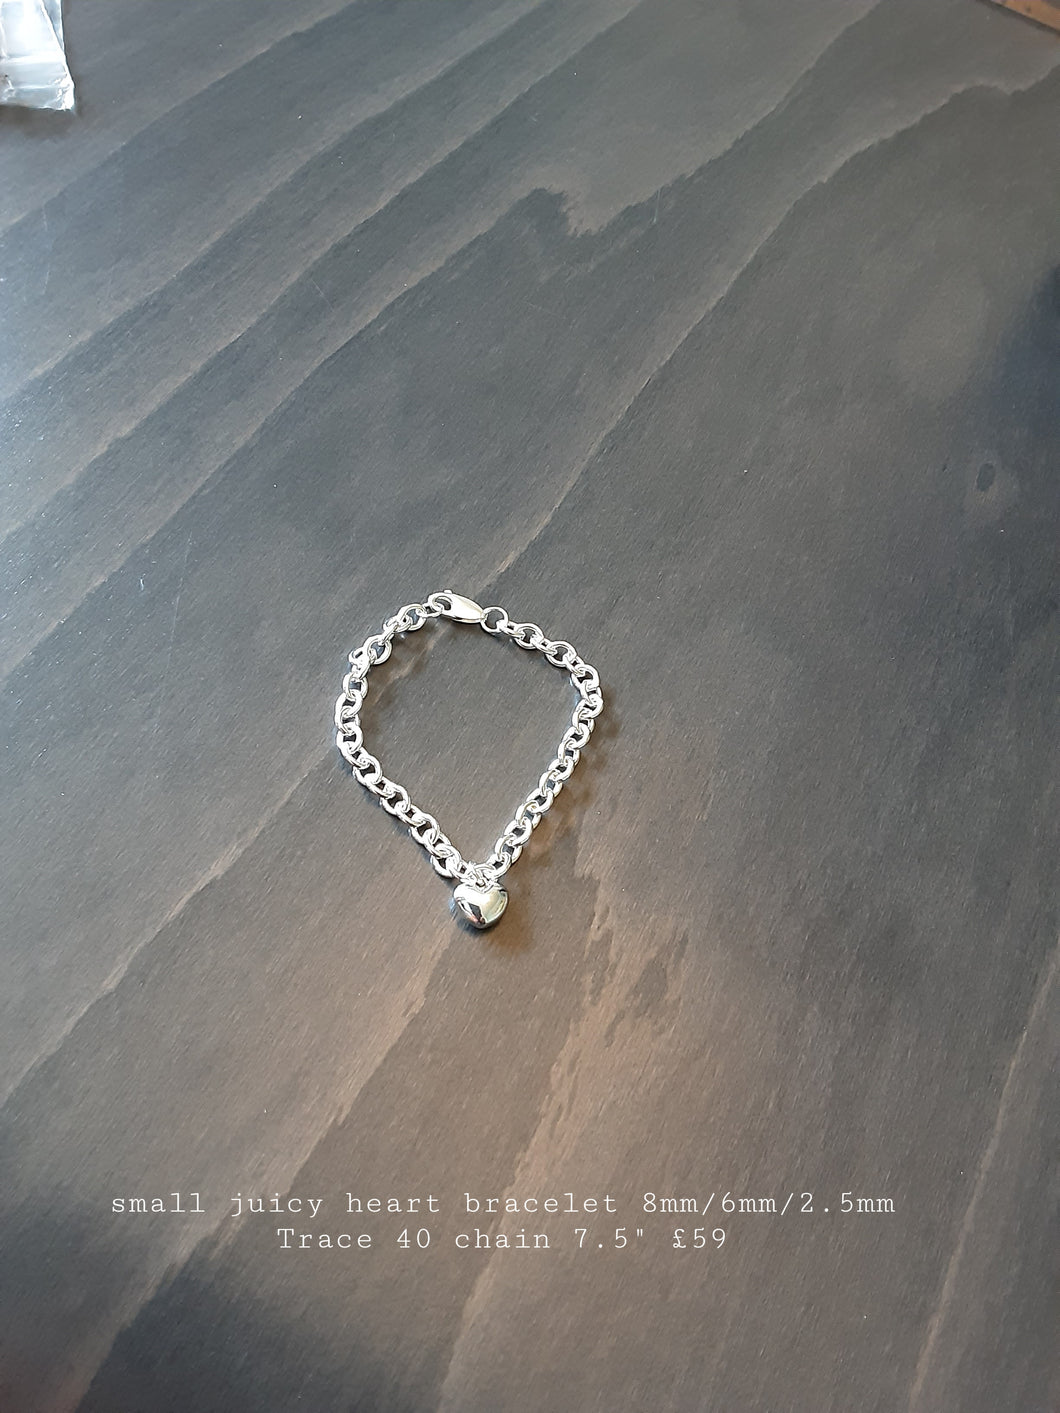 Juicy Heart Small bracelet